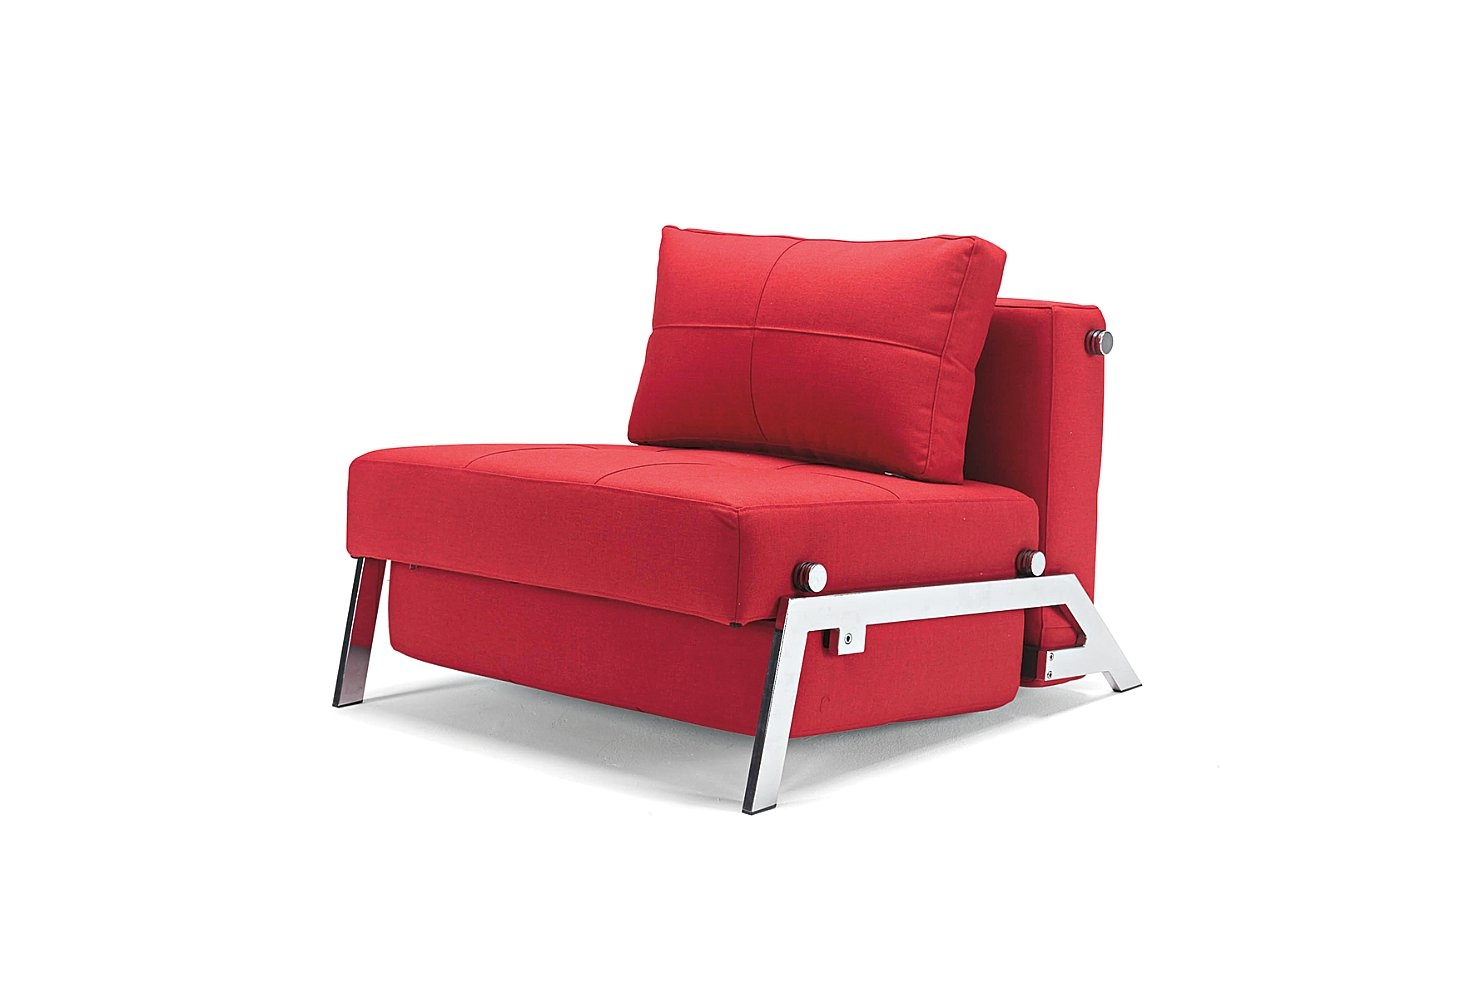 54 Single Sofa Bed Chair Merax Folding Lazy Sofa Floor Chair Sofa Intended For Sofa Beds Chairs (Image 1 of 15)